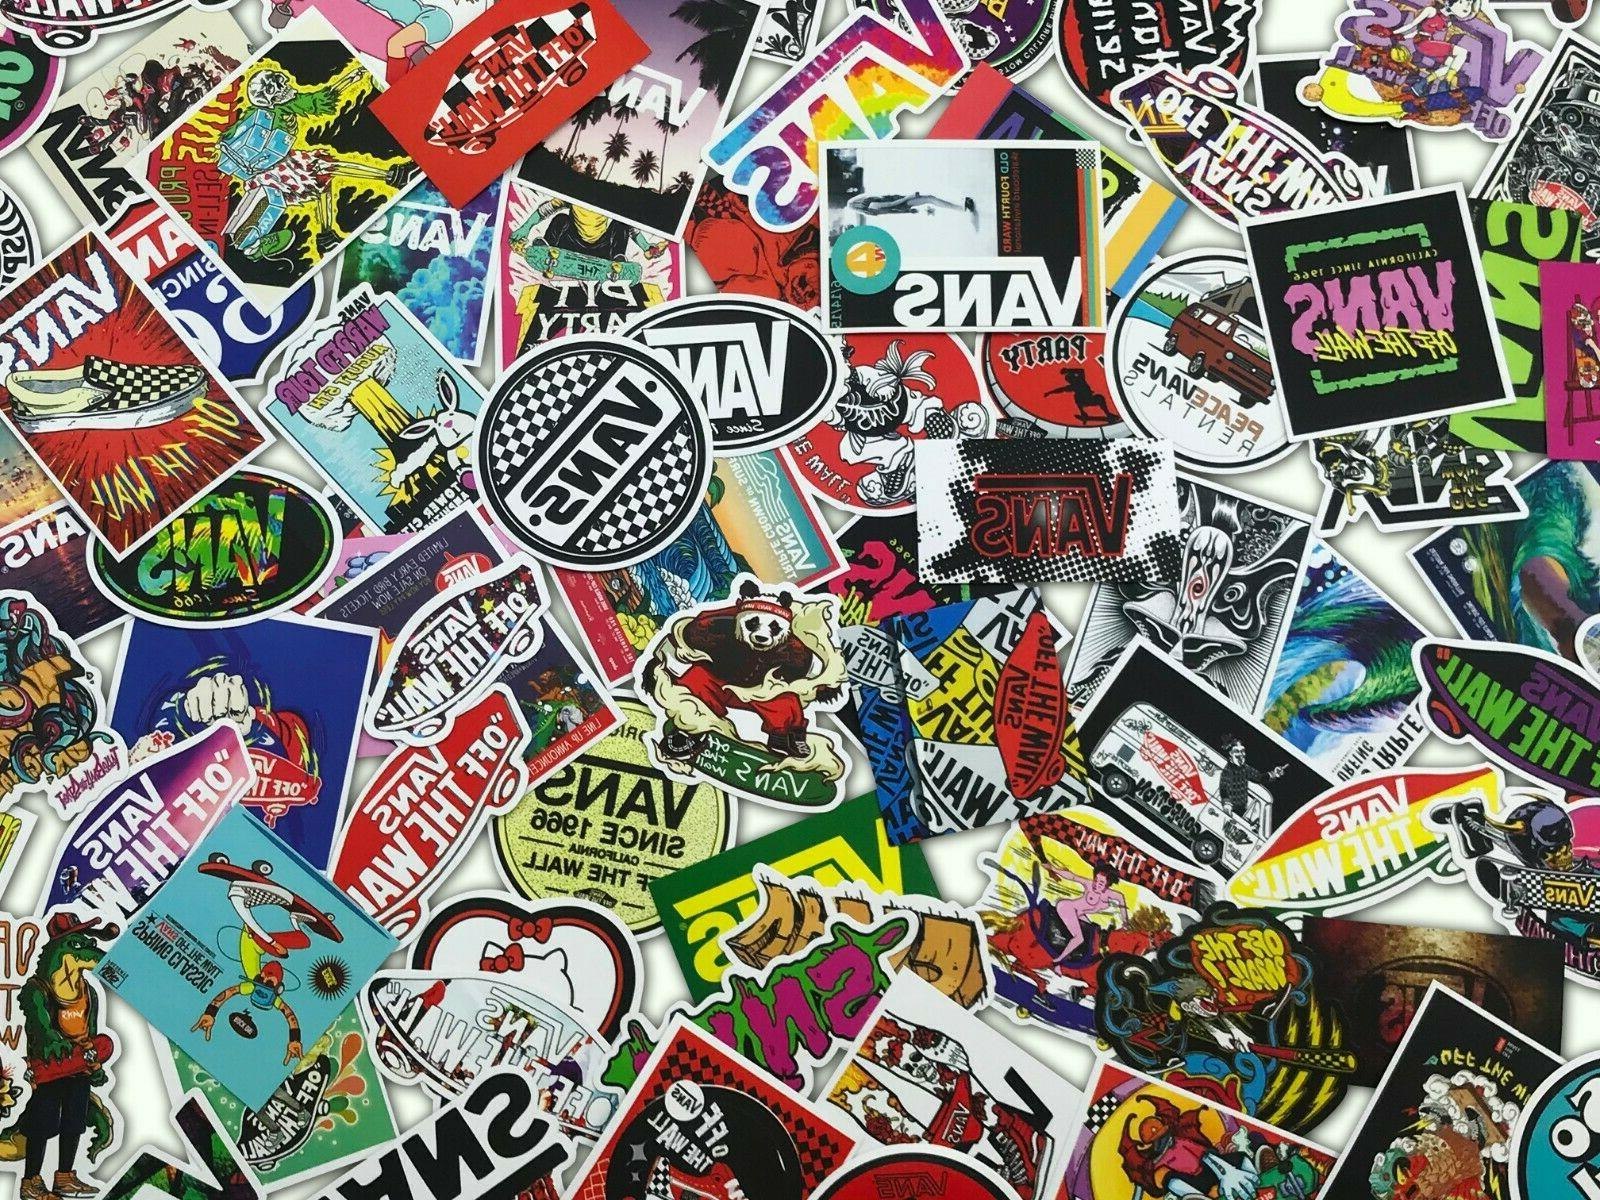 100 PCS VANS OFF THE WALL Logo Decal Sticker Skateboard Lapt